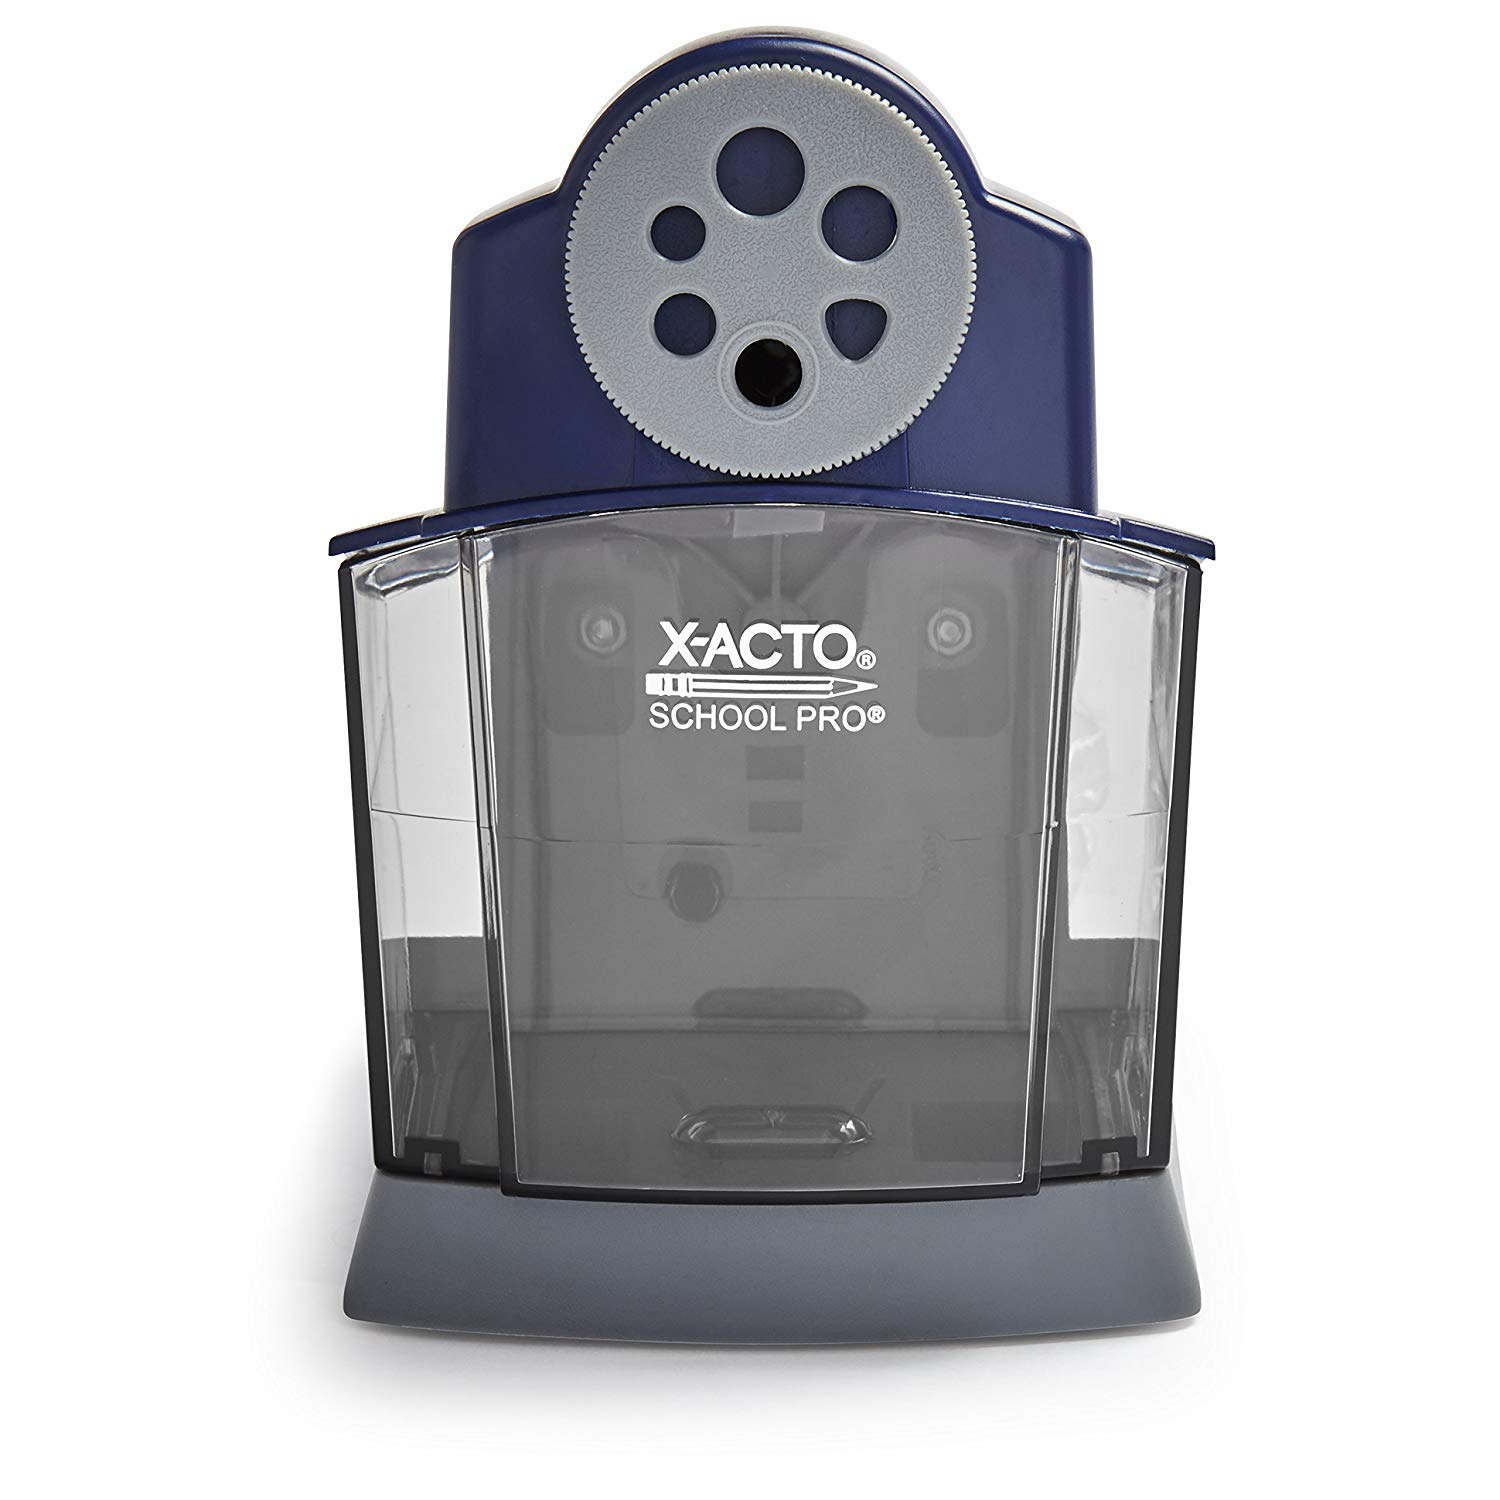 X-Acto School Pro Classroom Electric Pencil Sharpener, Blue, 1 Count (1670) by X-Acto